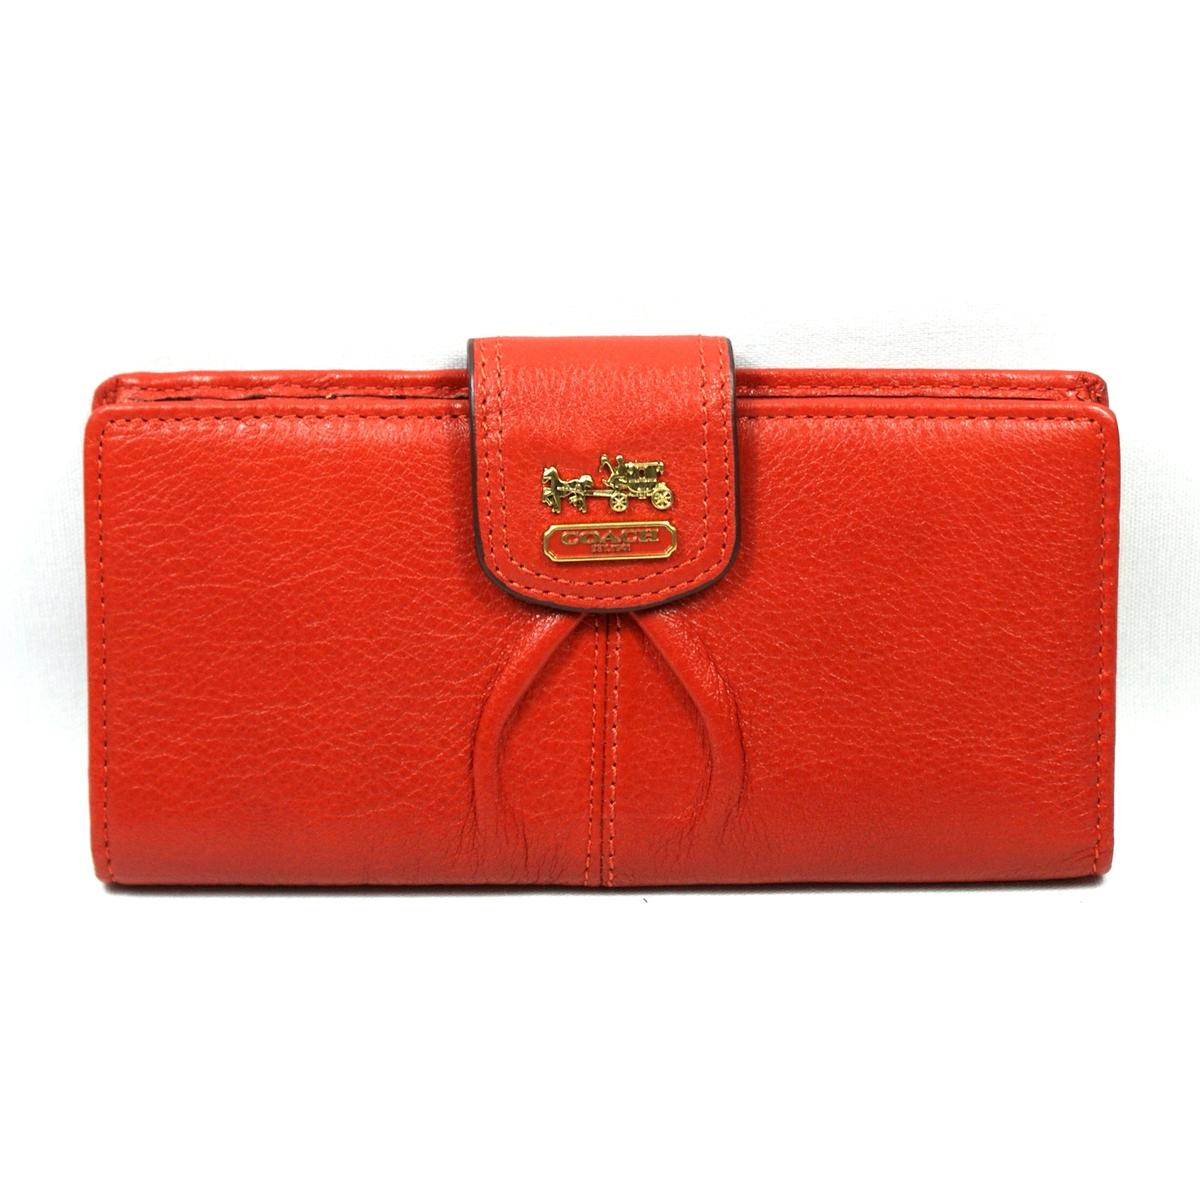 Coach Madison Leather Skinny Wallet Persimmon 46612